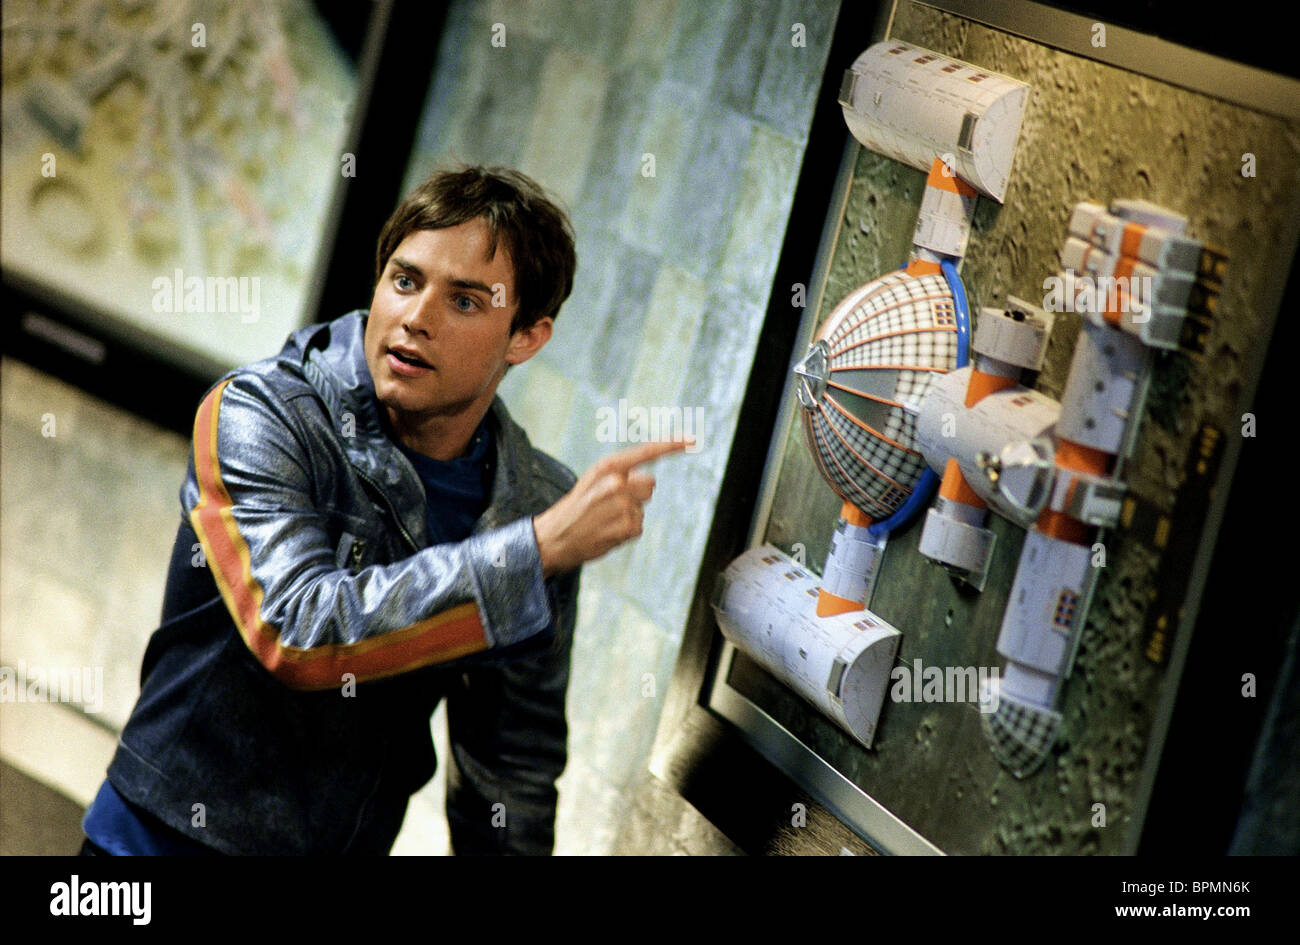 BEN EASTER ZENON: Z3; ZENON Z3 (2004 Stock Photo, Royalty ...